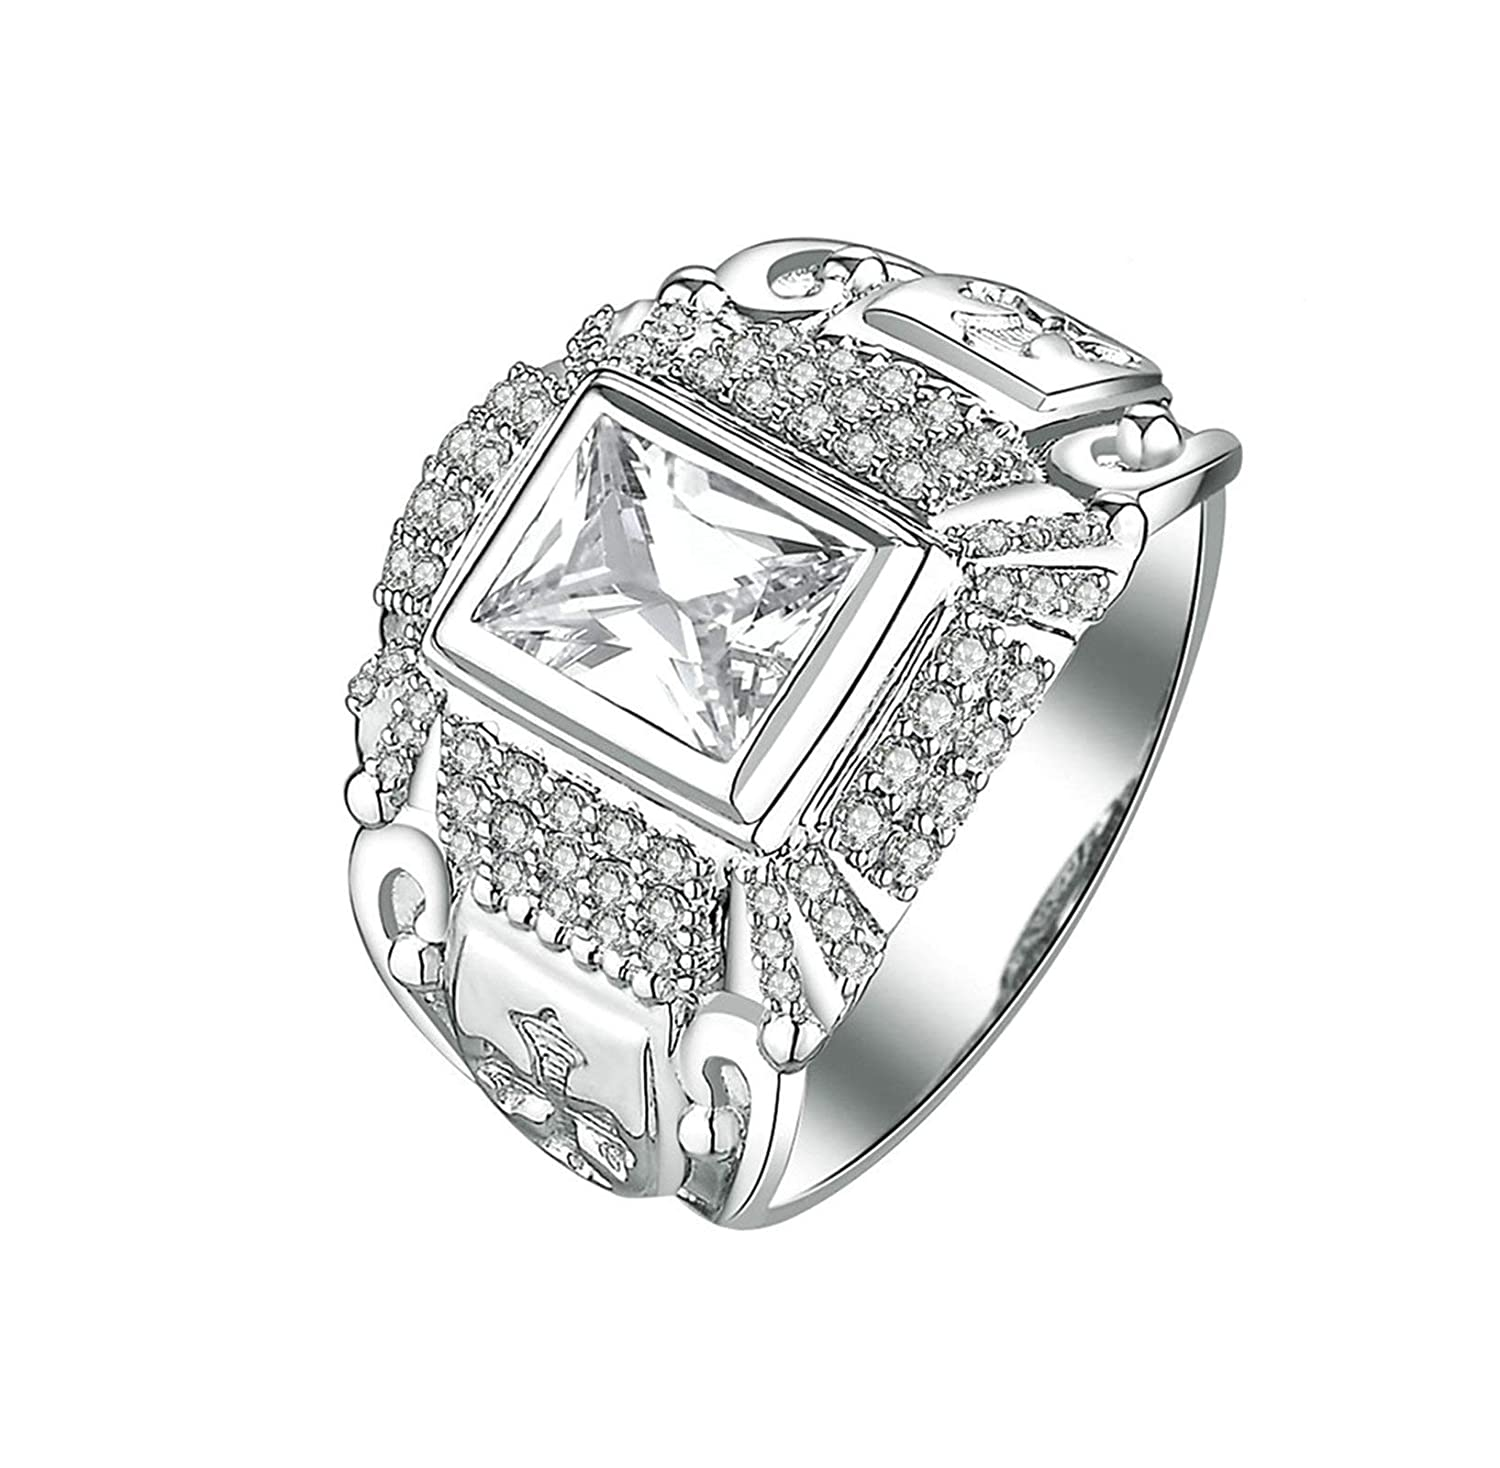 c06c0a341672f Aooaz Jewelry Wedding Ring Silver Material Square Ring for Women ...